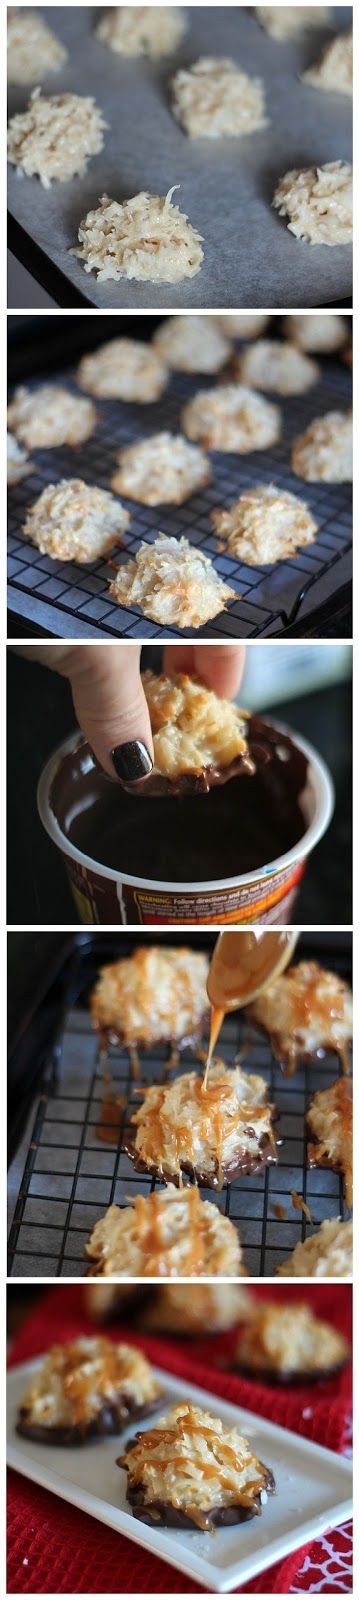 Salted Caramel Coconut Macaroons Ingredients: 1 (14 oz) can Sweetened Condensed Milk 3/4 cup caramel sauce 1 cup flour 2 (14 oz) bag shredded sweetened coconut flakes 1 1/2- 2 tsp tsp sea salt, div...